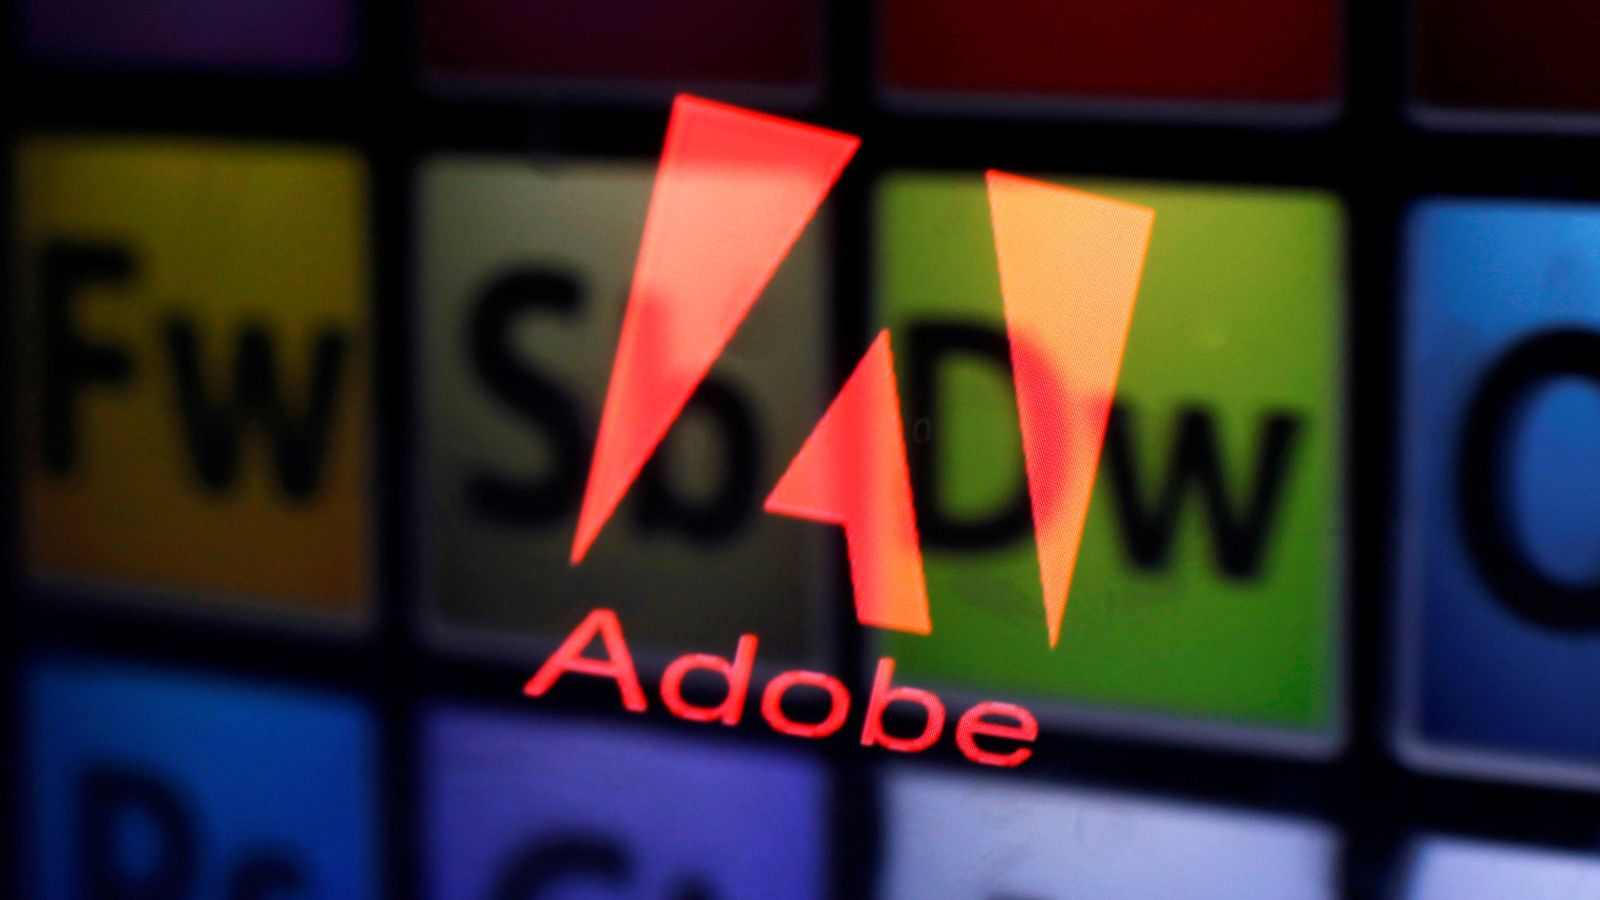 An Adobe logo and Adobe products are seen reflected on a monitor display and an iPad screen, in this picture illustration July 8, 2013. REUTERS/Dado Ruvic/Illustration/File Photo GLOBAL BUSINESS WEEK AHEAD PACKAGE Ð SEARCH ÒBUSINESS WEEK AHEAD SEPTEMBER 19Ó FOR ALL IMAGES